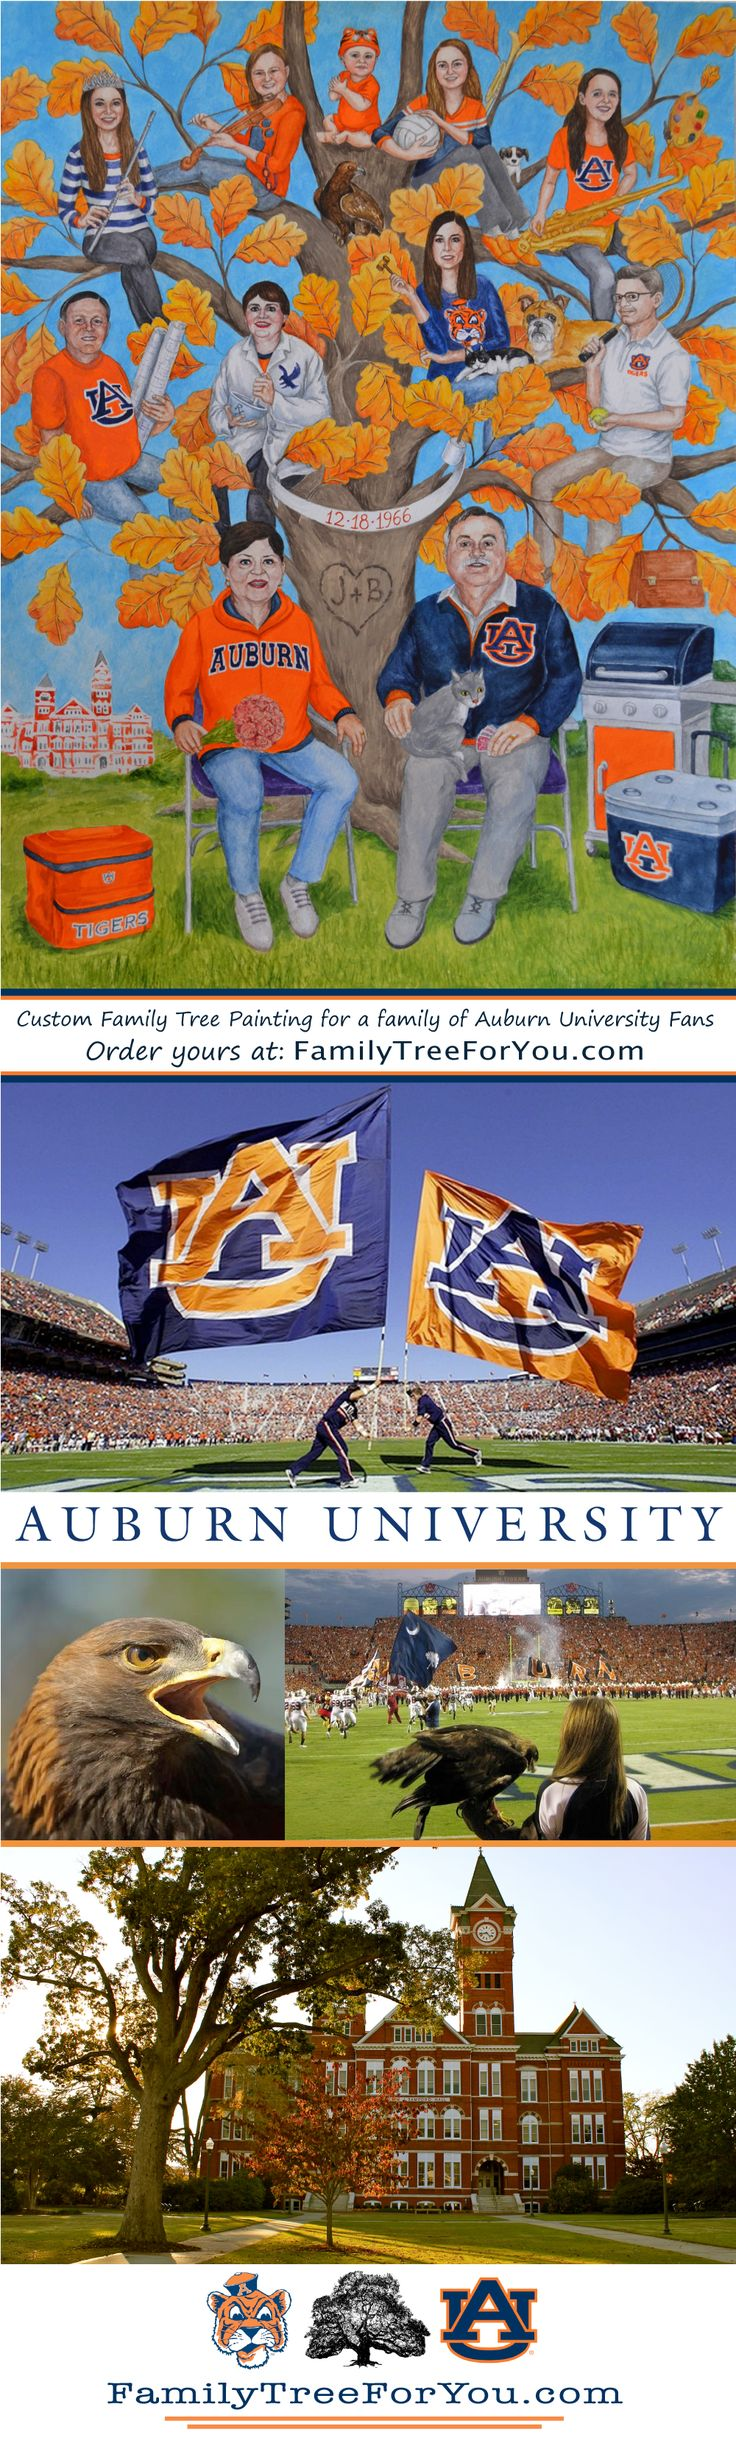 Custom family tree painting for a family of Auburn University sports fans.  In the painting the whole family is dressed in Auburn attire as if they're tailgating at a game. Samford Hall, the War Eagle, and Tiger, the University mascot are also featured. Created as a unique 50th wedding anniversary gift. #auburnfan #collegefootballfan #collegebasketballfan